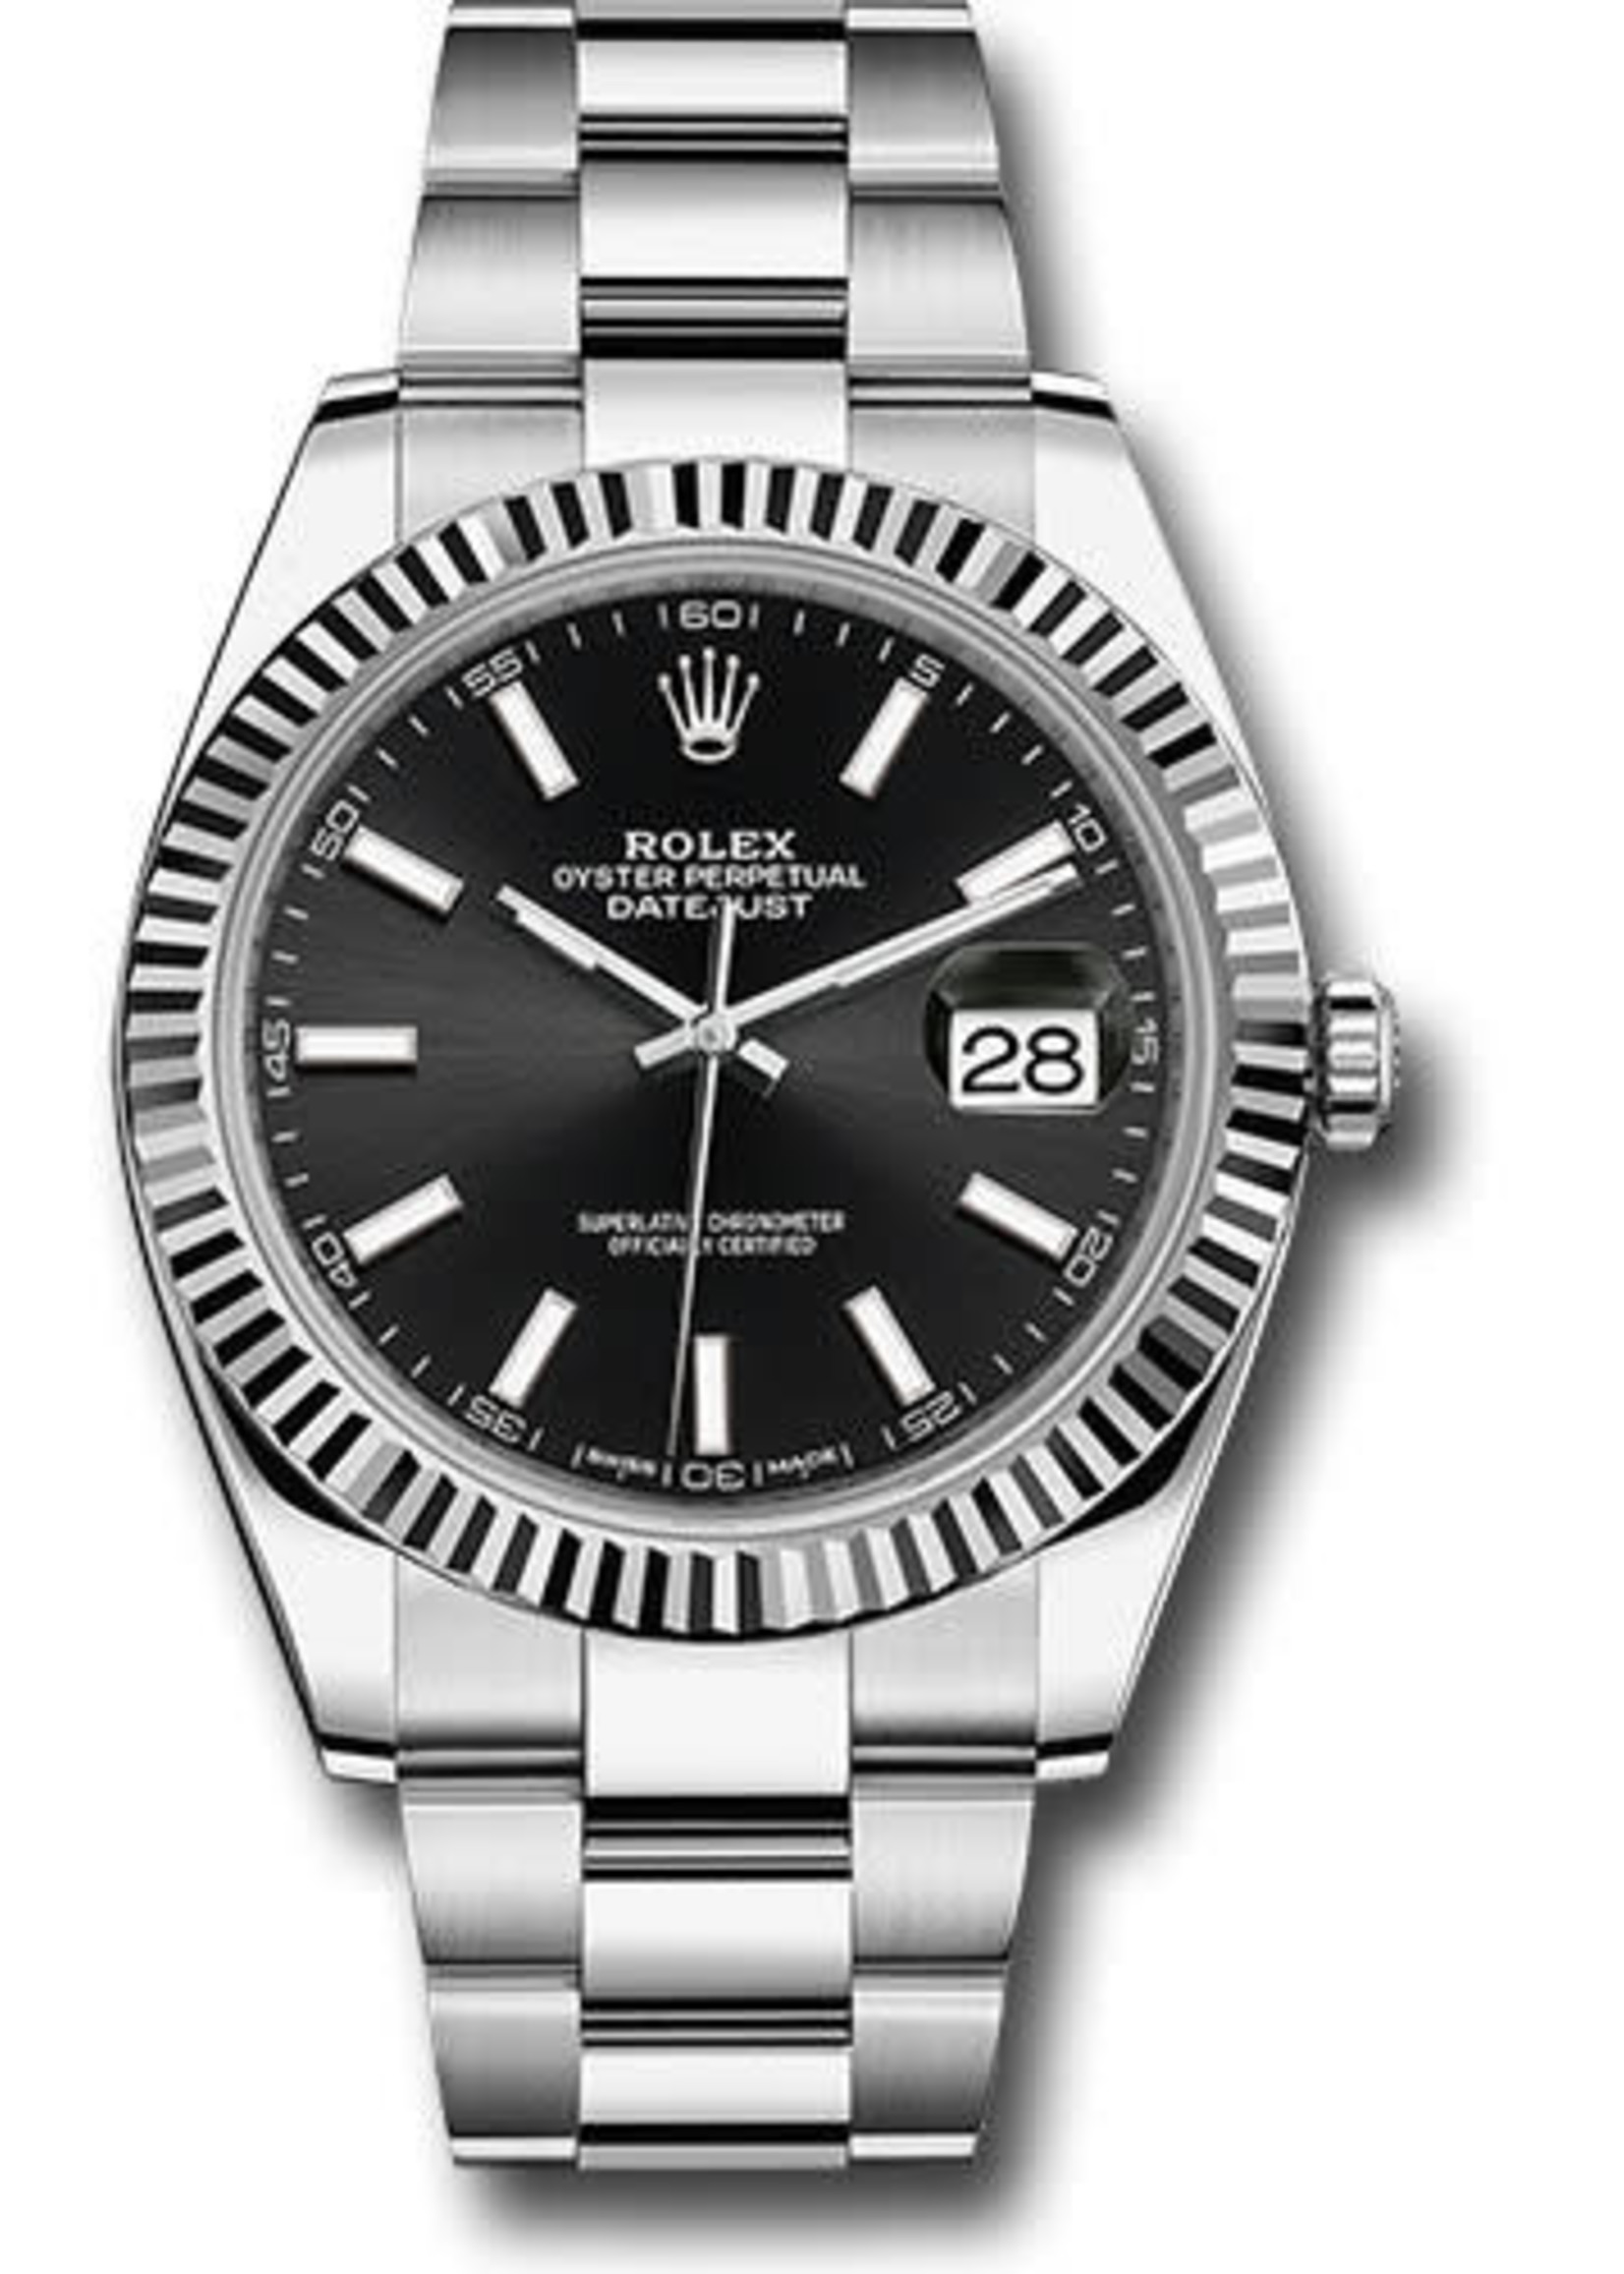 Rolex Rolex Datejust 41MM #116334 (2011 B+P)